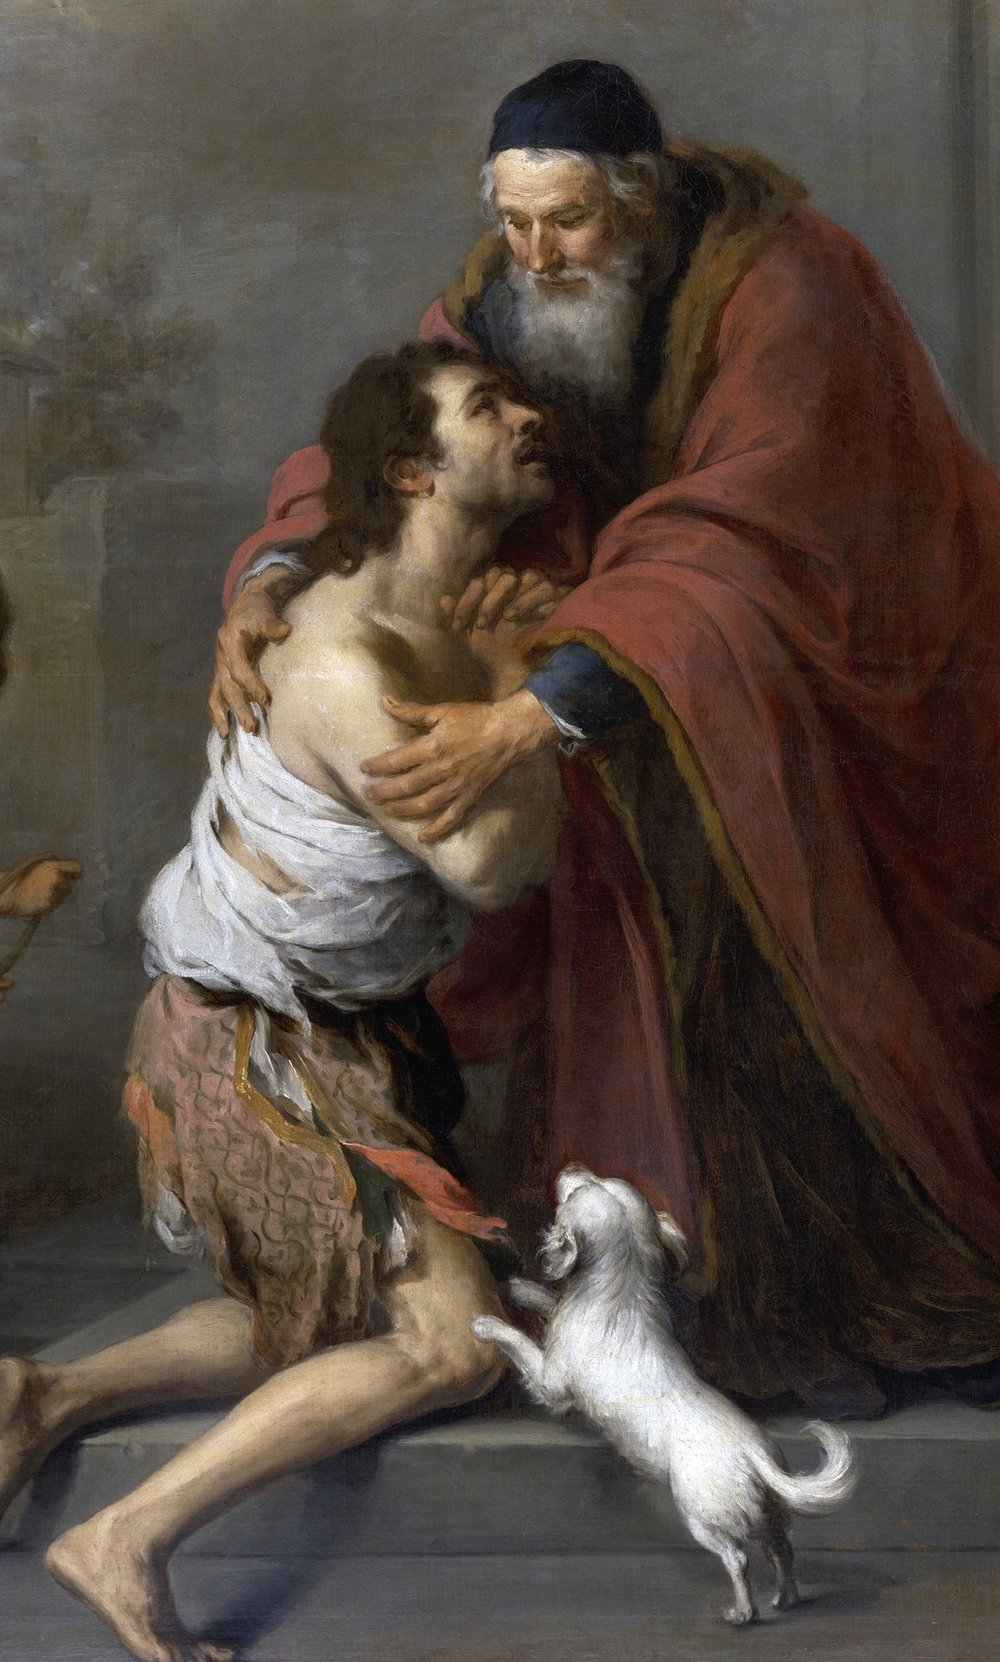 A detail from 'The Return of the Prodigal Son' by Bartolomé Esteban Murillo (1617–1682)